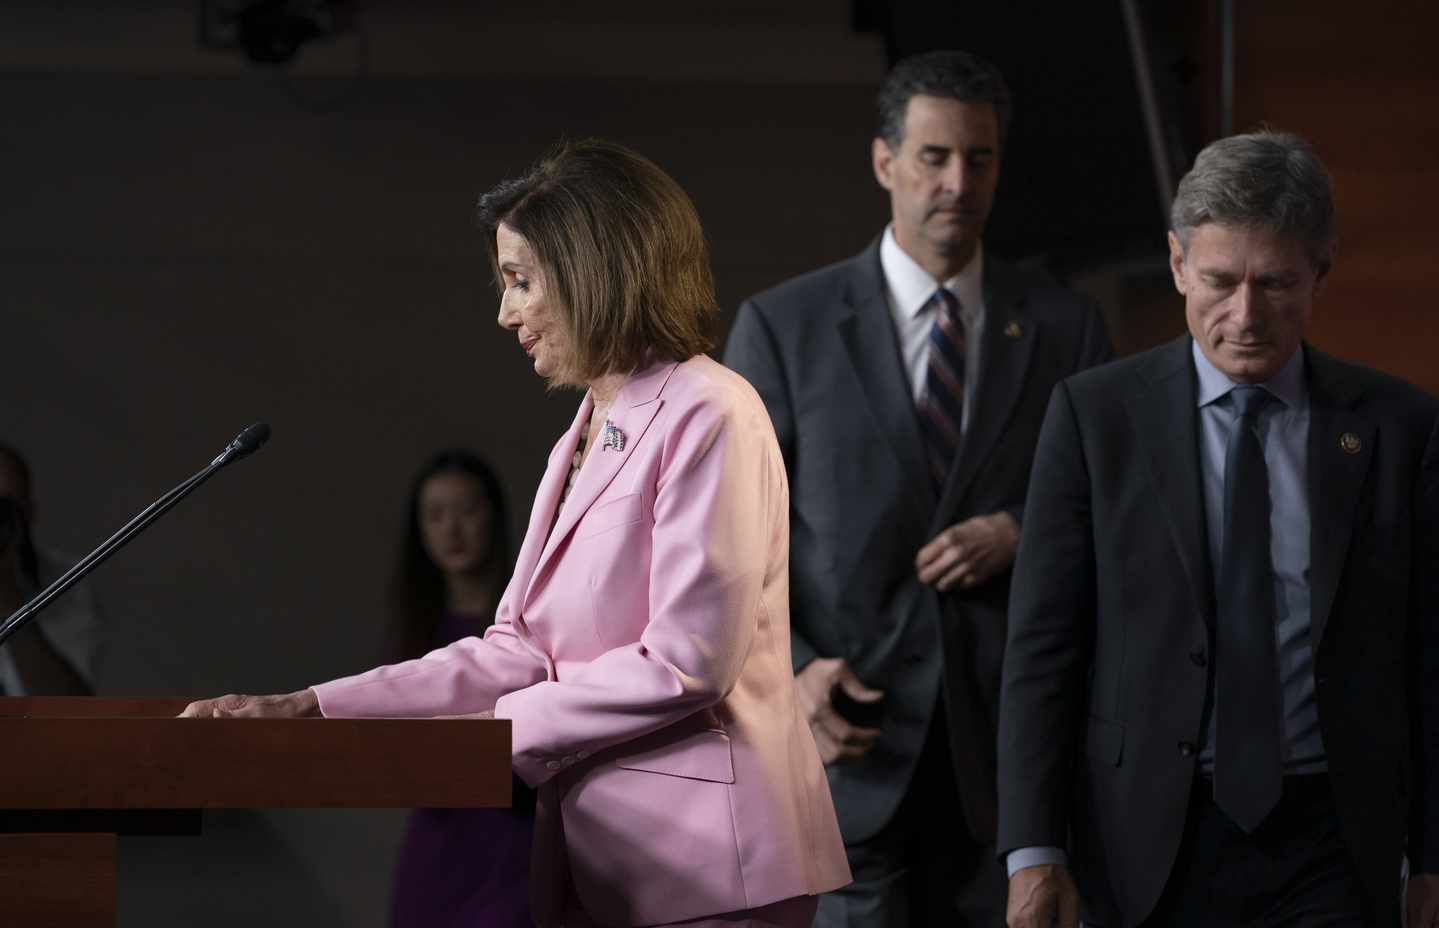 Pelosi's Sidestep on Impeachment Vote Cuts Both Ways